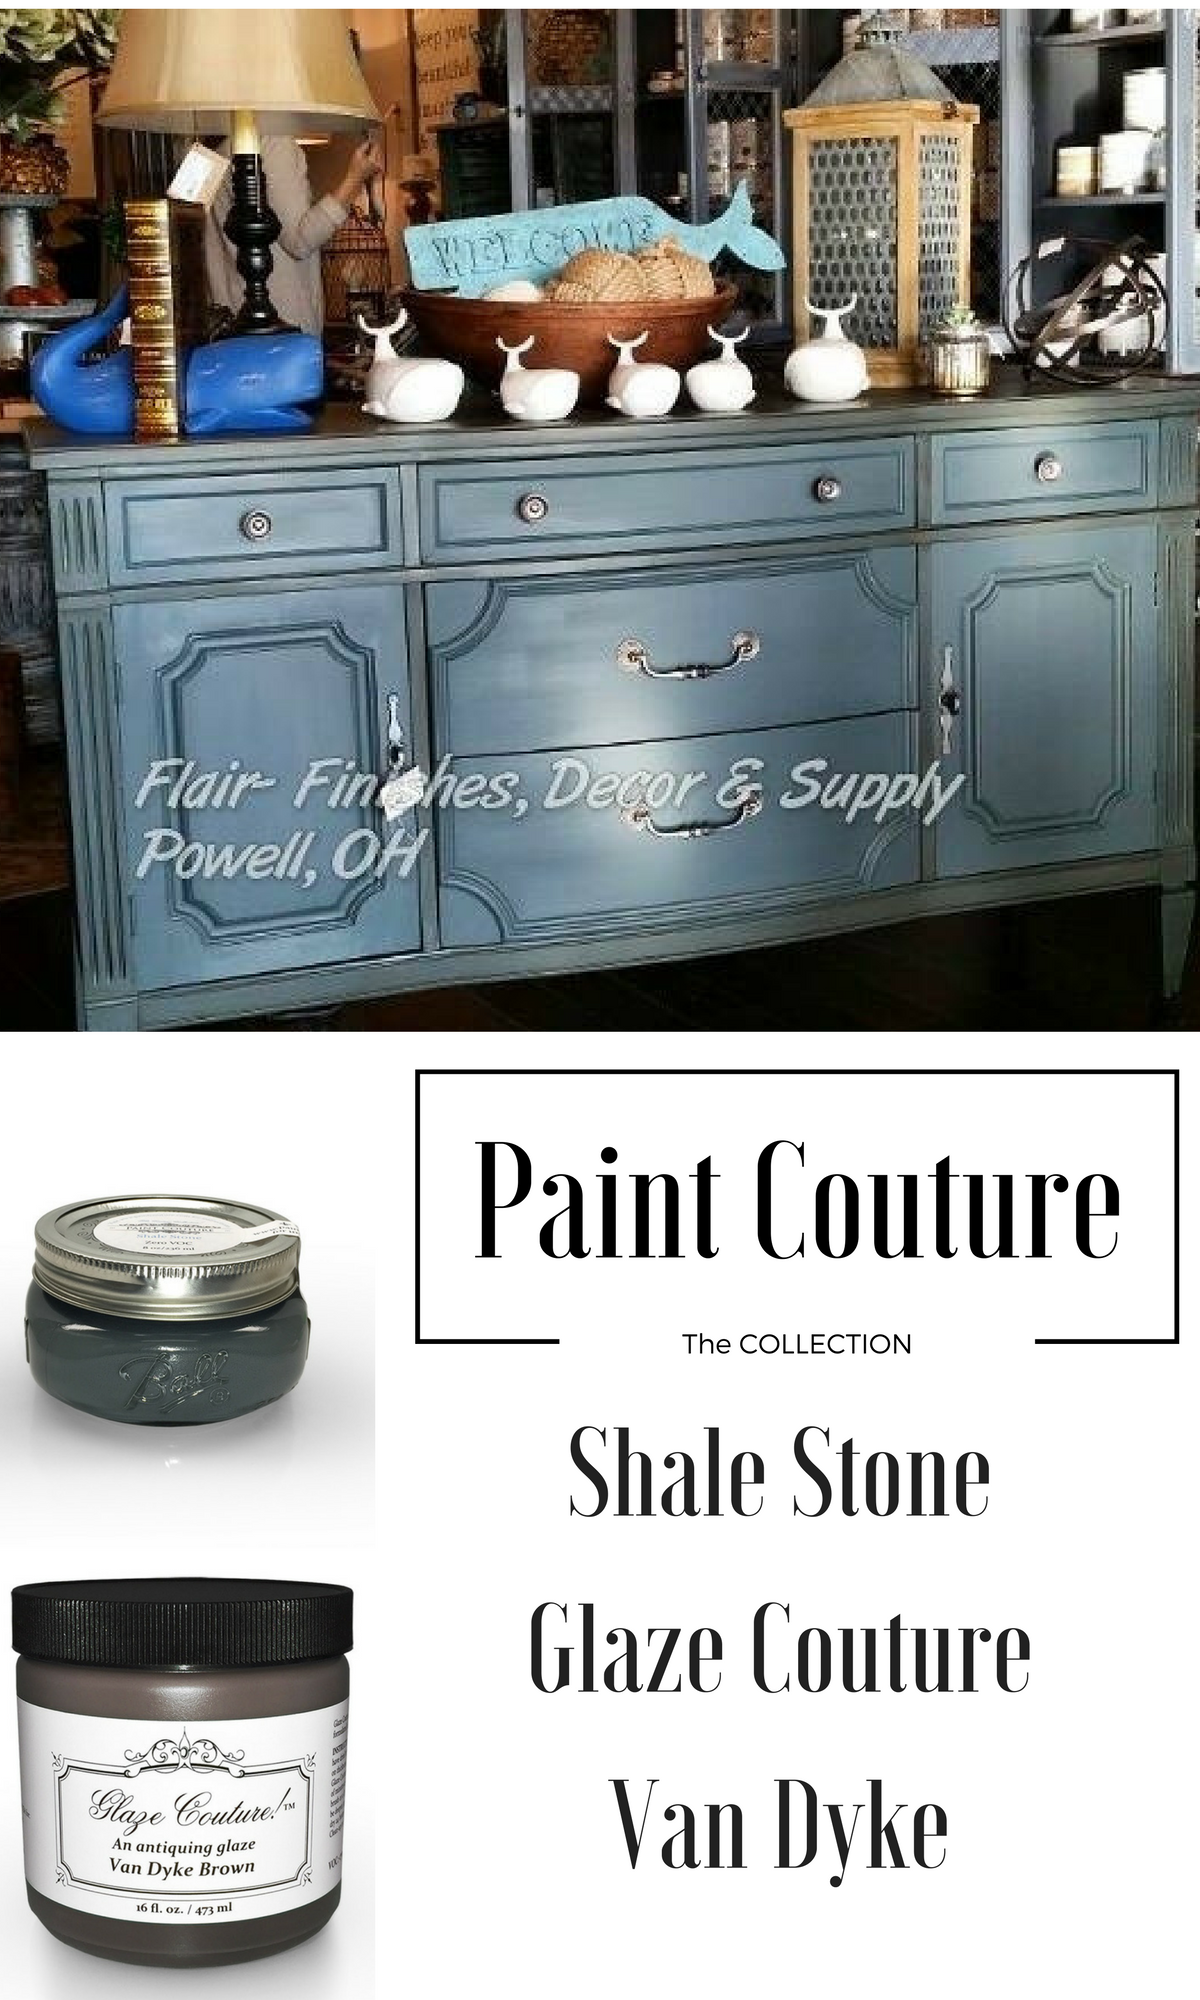 Shale Stone Zero Voc Furniture Cabinet Paint Paint Couture Painting Cabinets Gold Painted Furniture